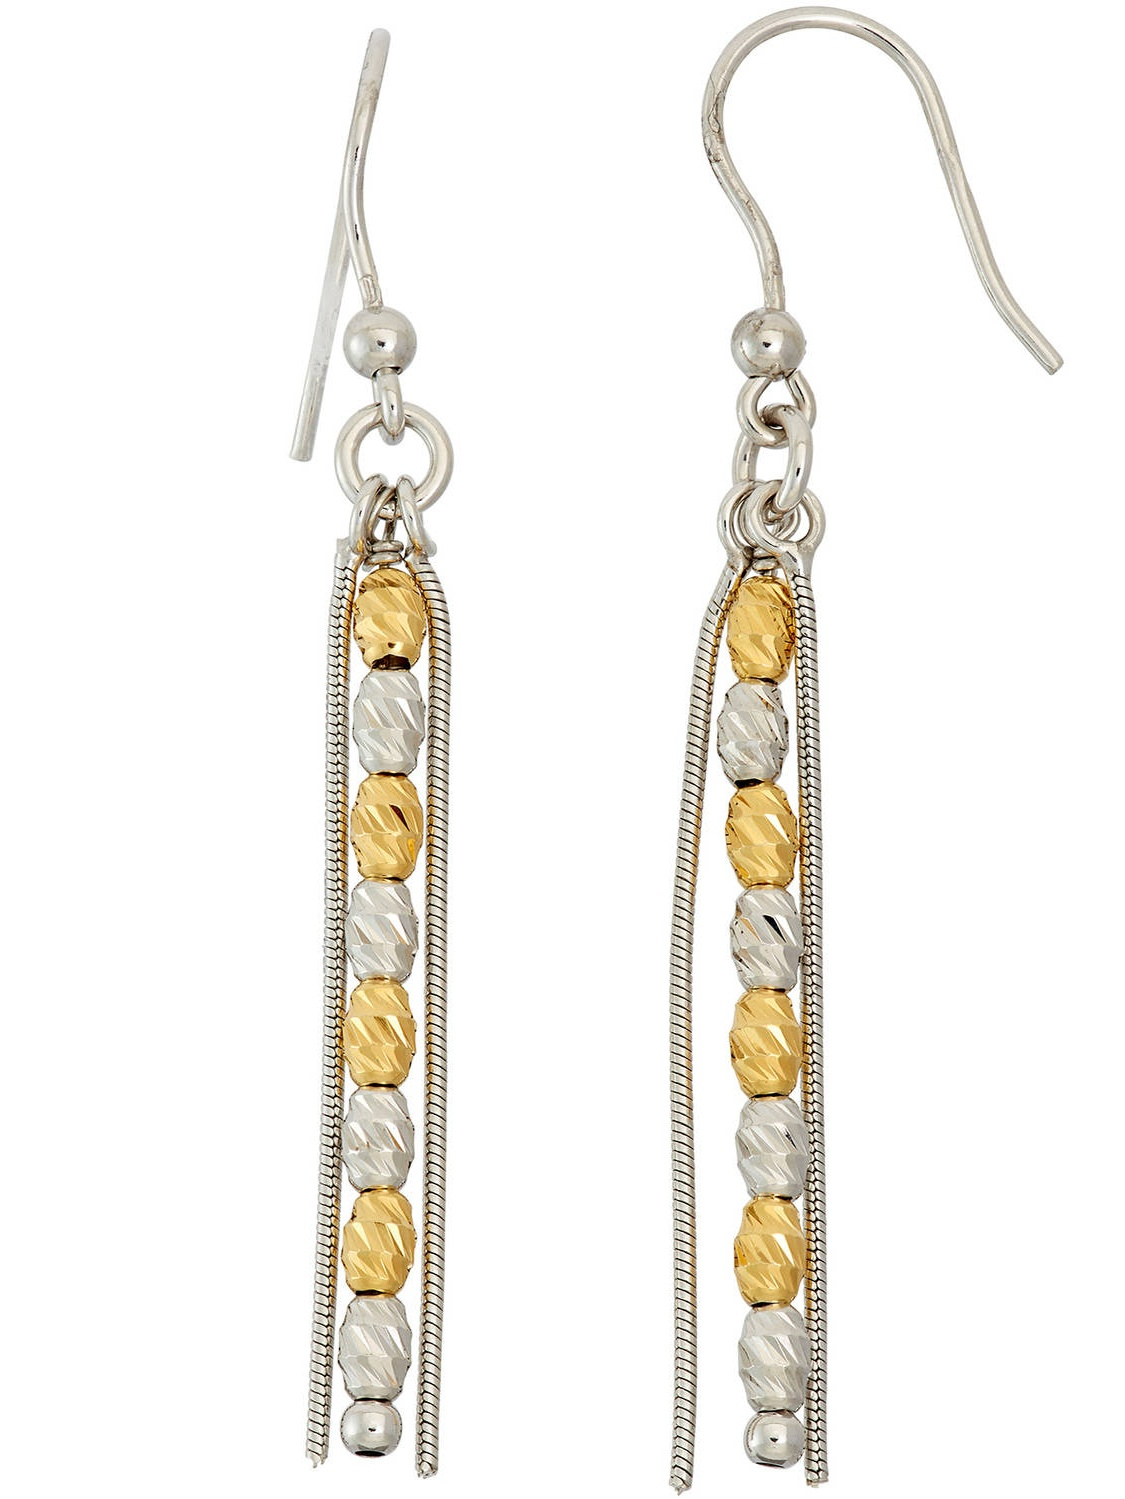 14kt Gold- and Rhodium-Plated Sterling Silver DC Beads and Strands Earrings